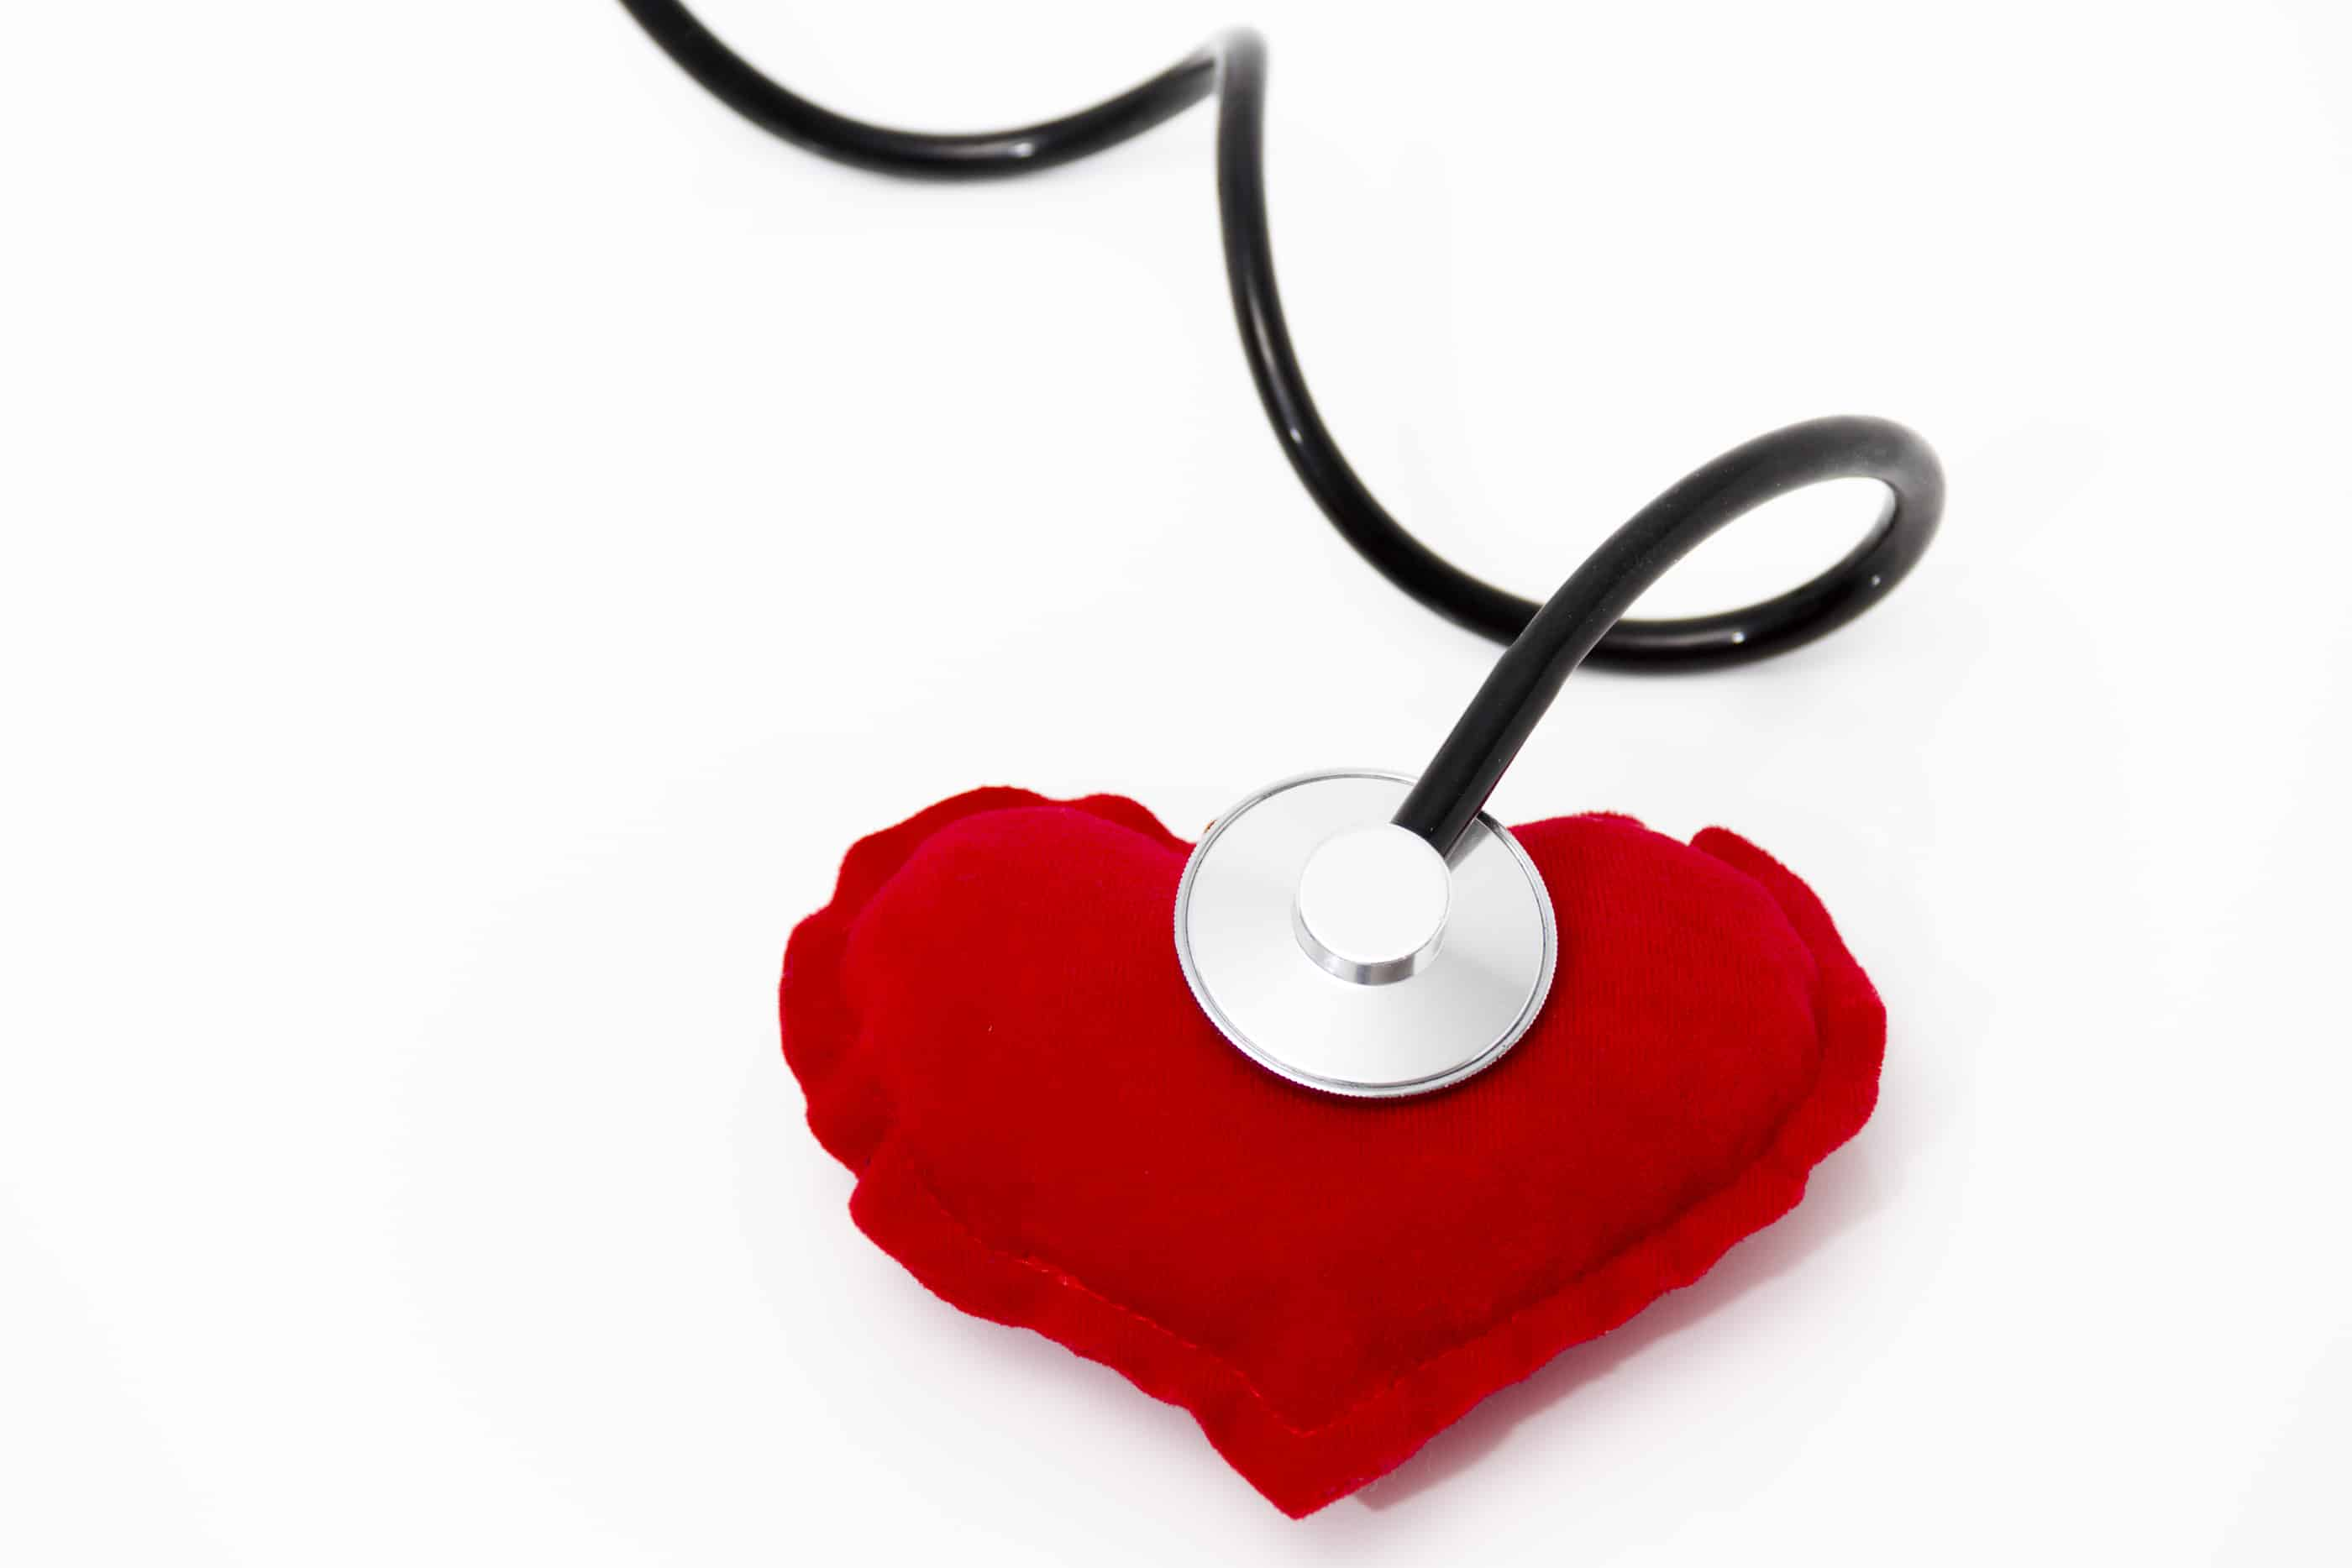 Doctor's Stethoscope Listening To A Healthy Red Heart ...Doctor Stethoscope Comment